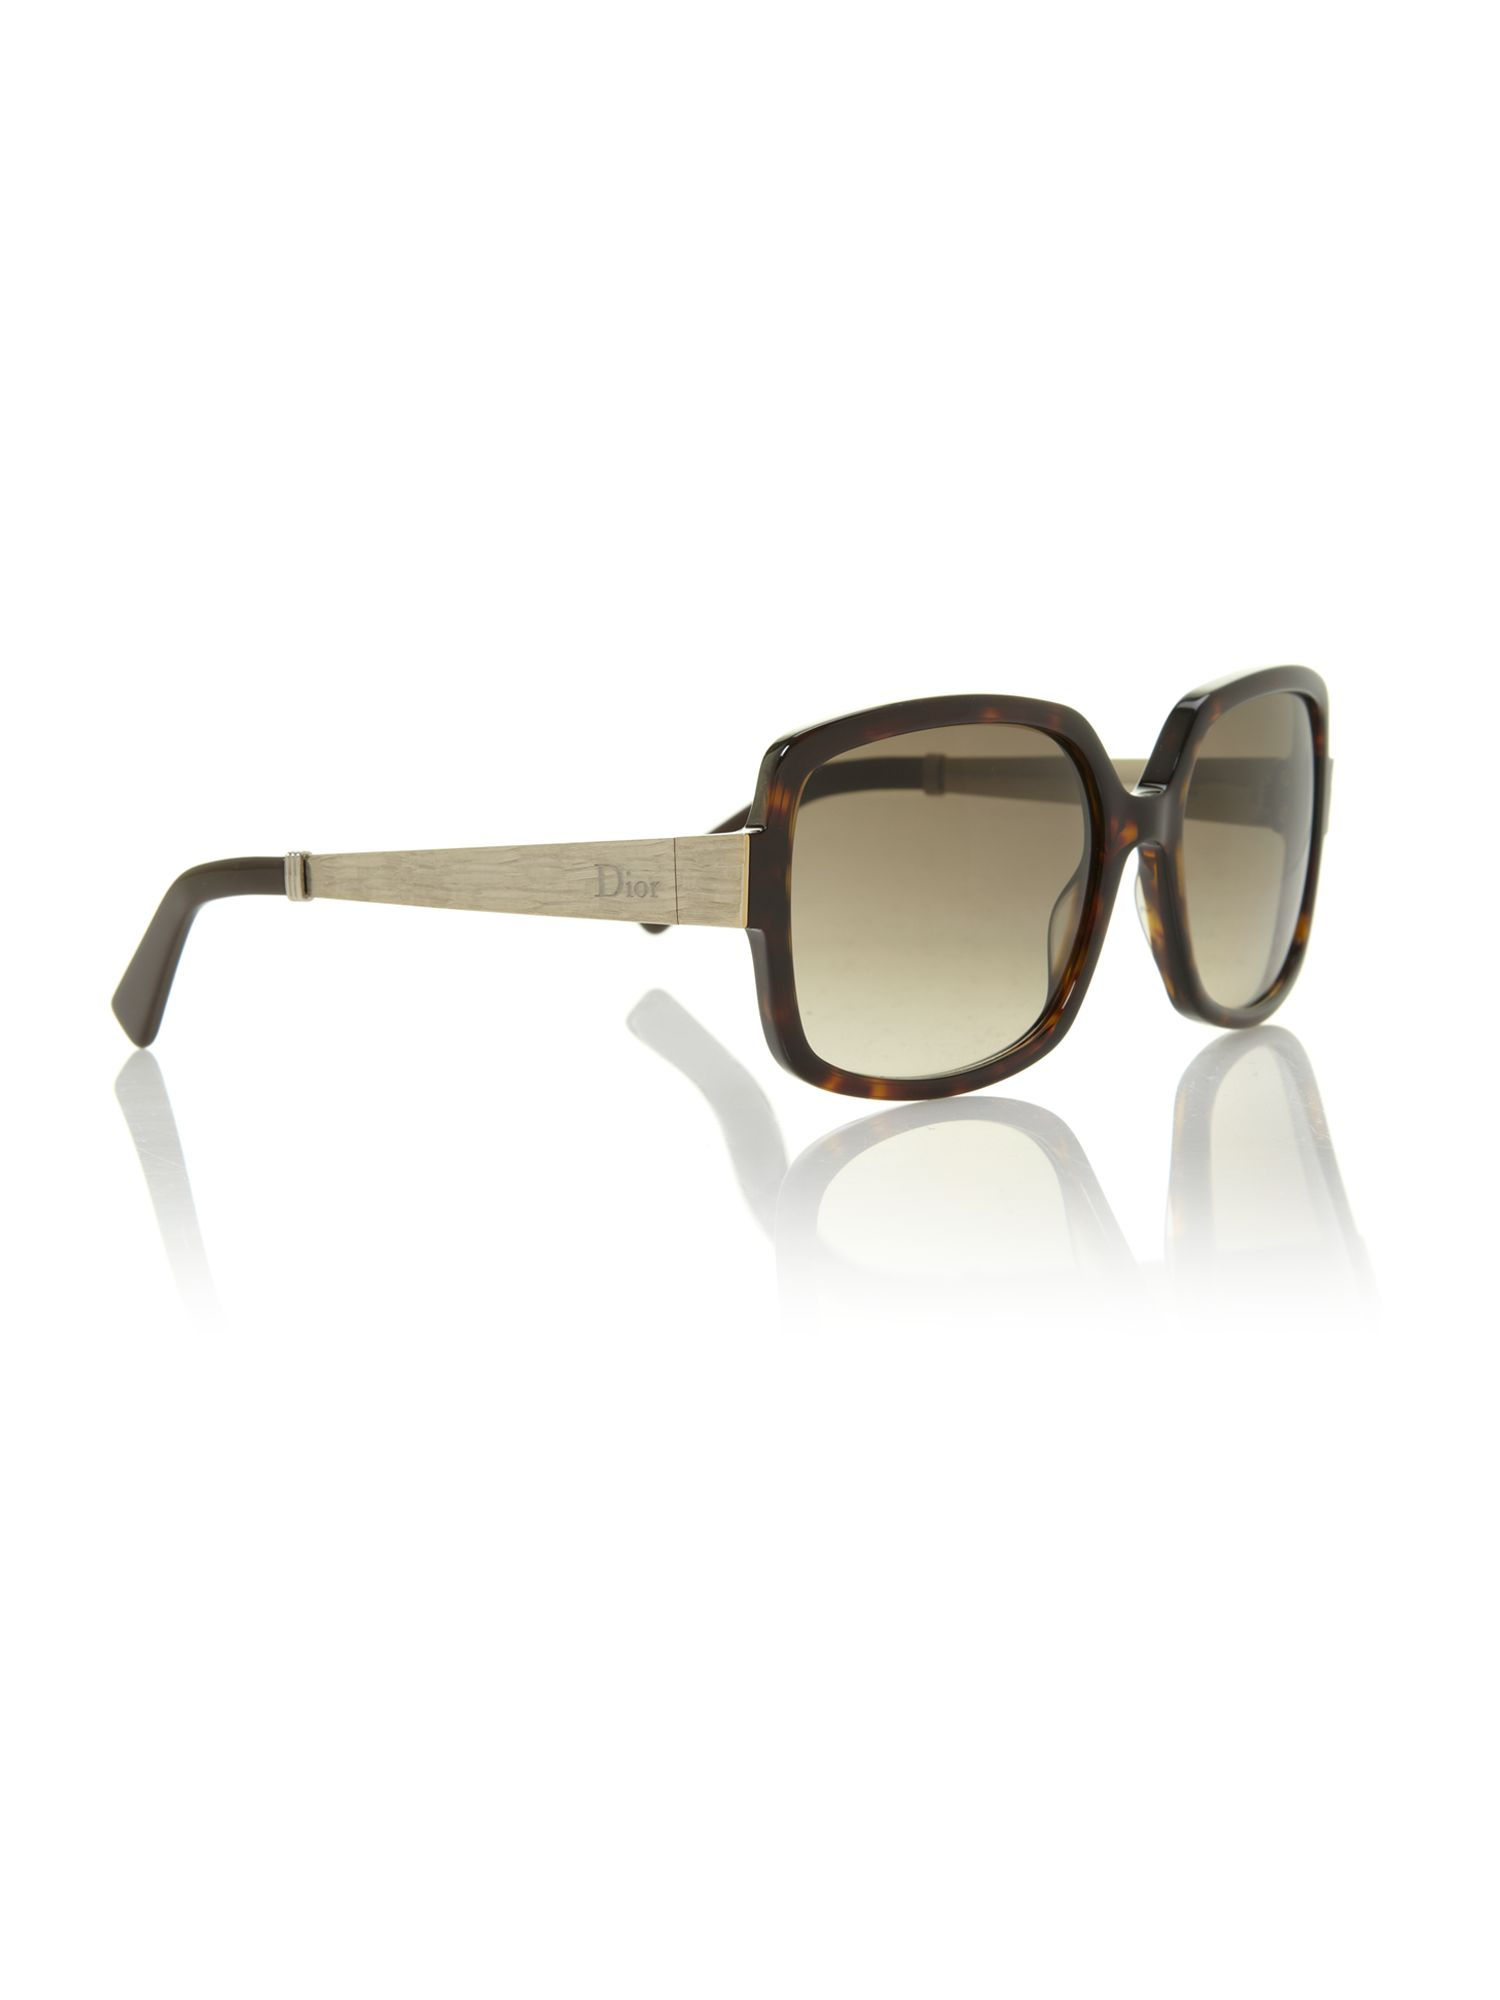 Ladies DIORSOIE2 dark havana square sunglasses